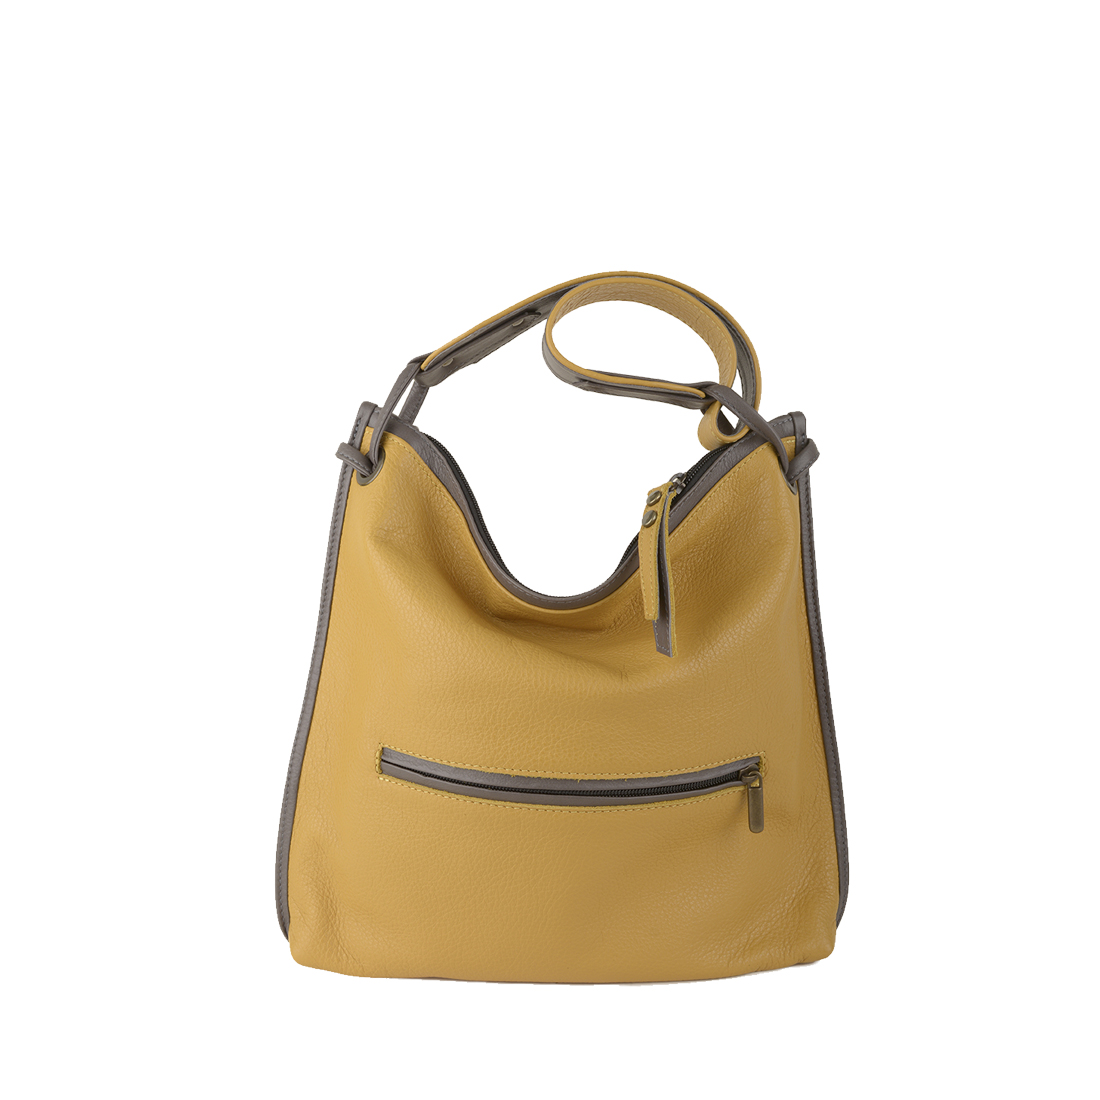 Maria Mustard Grigio Leather Shoulder Bag